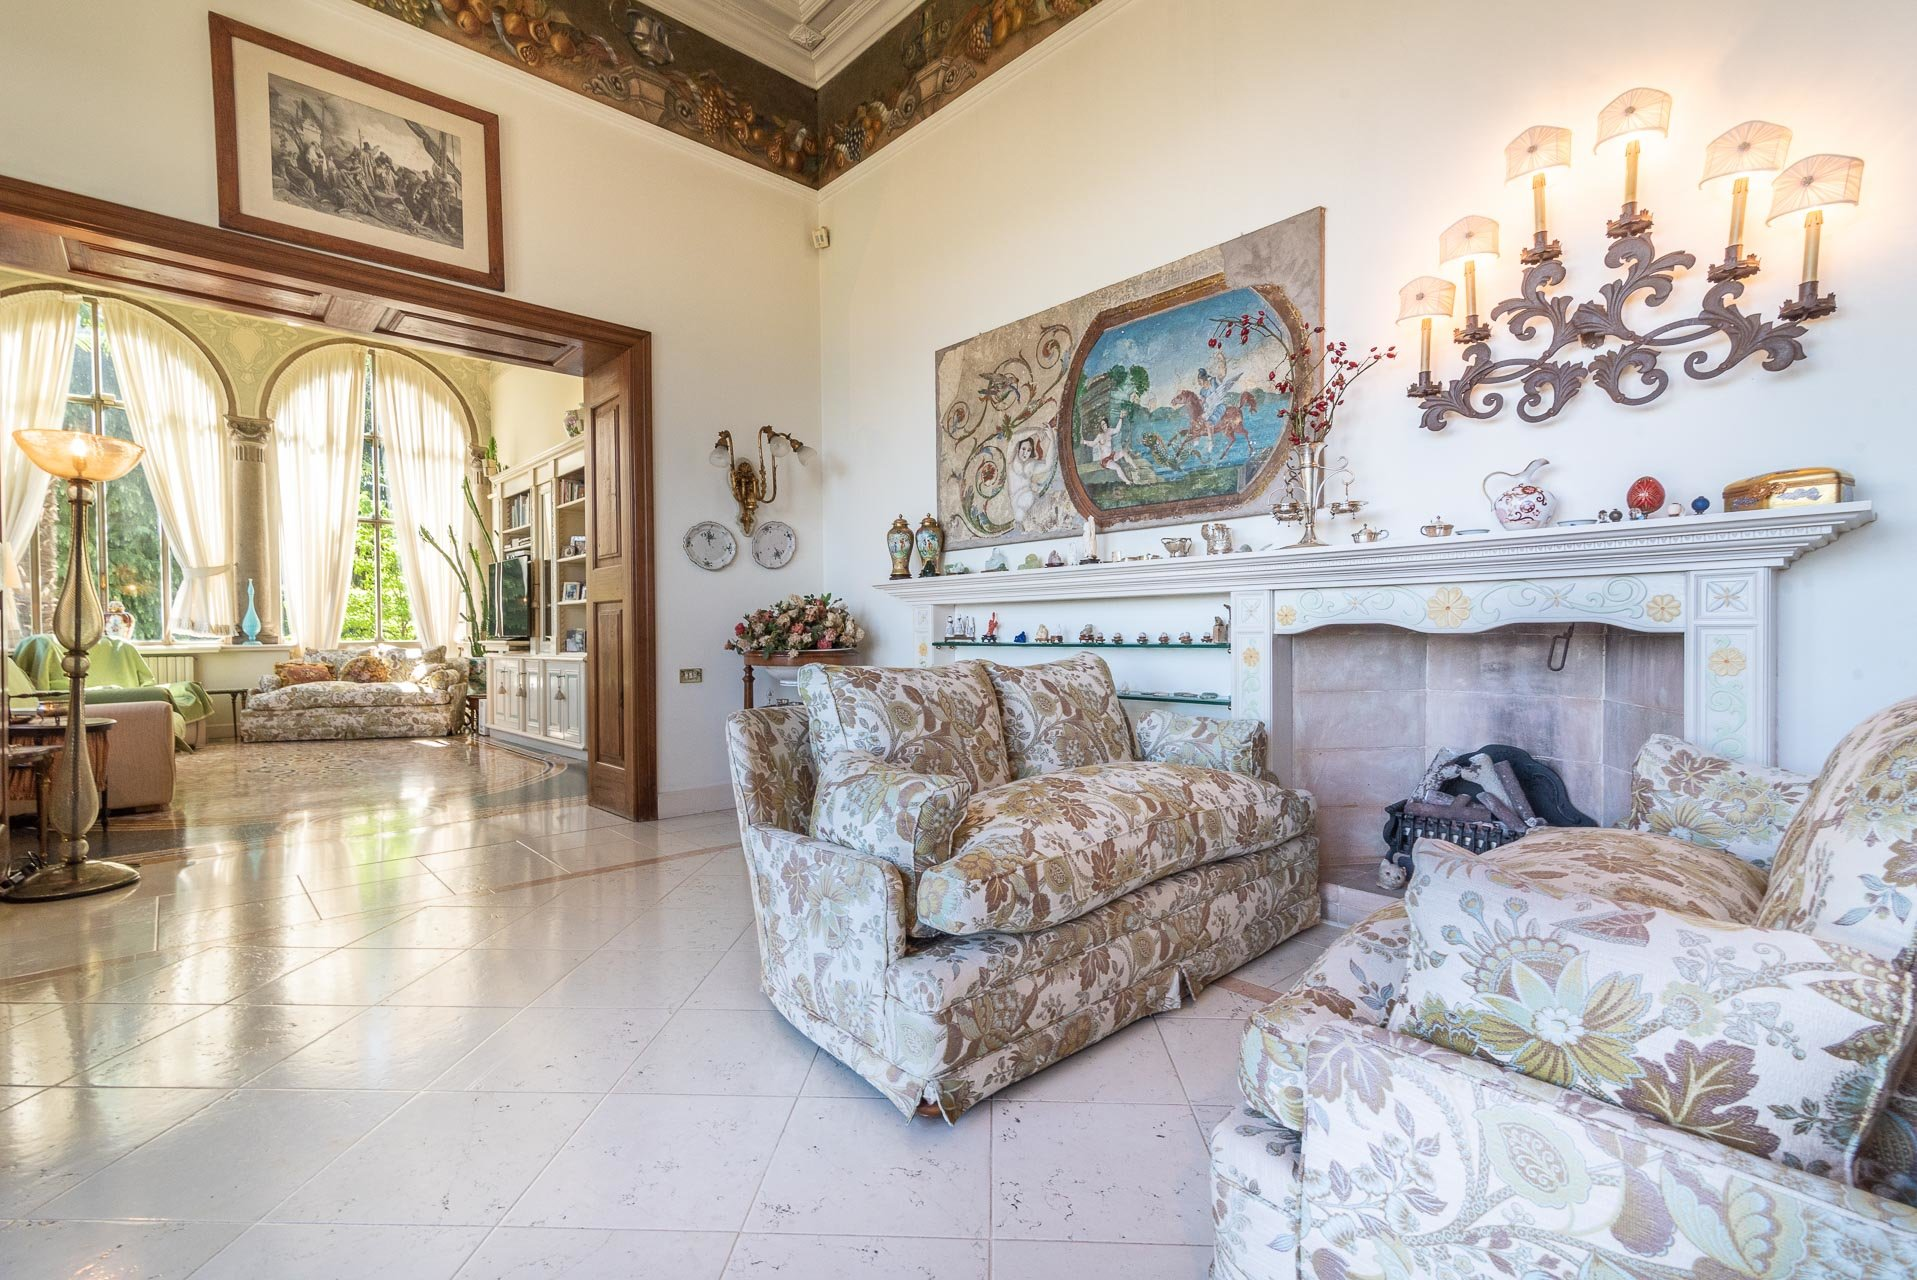 Luxurious apartment for sale in a villa in Stresa - sitting room